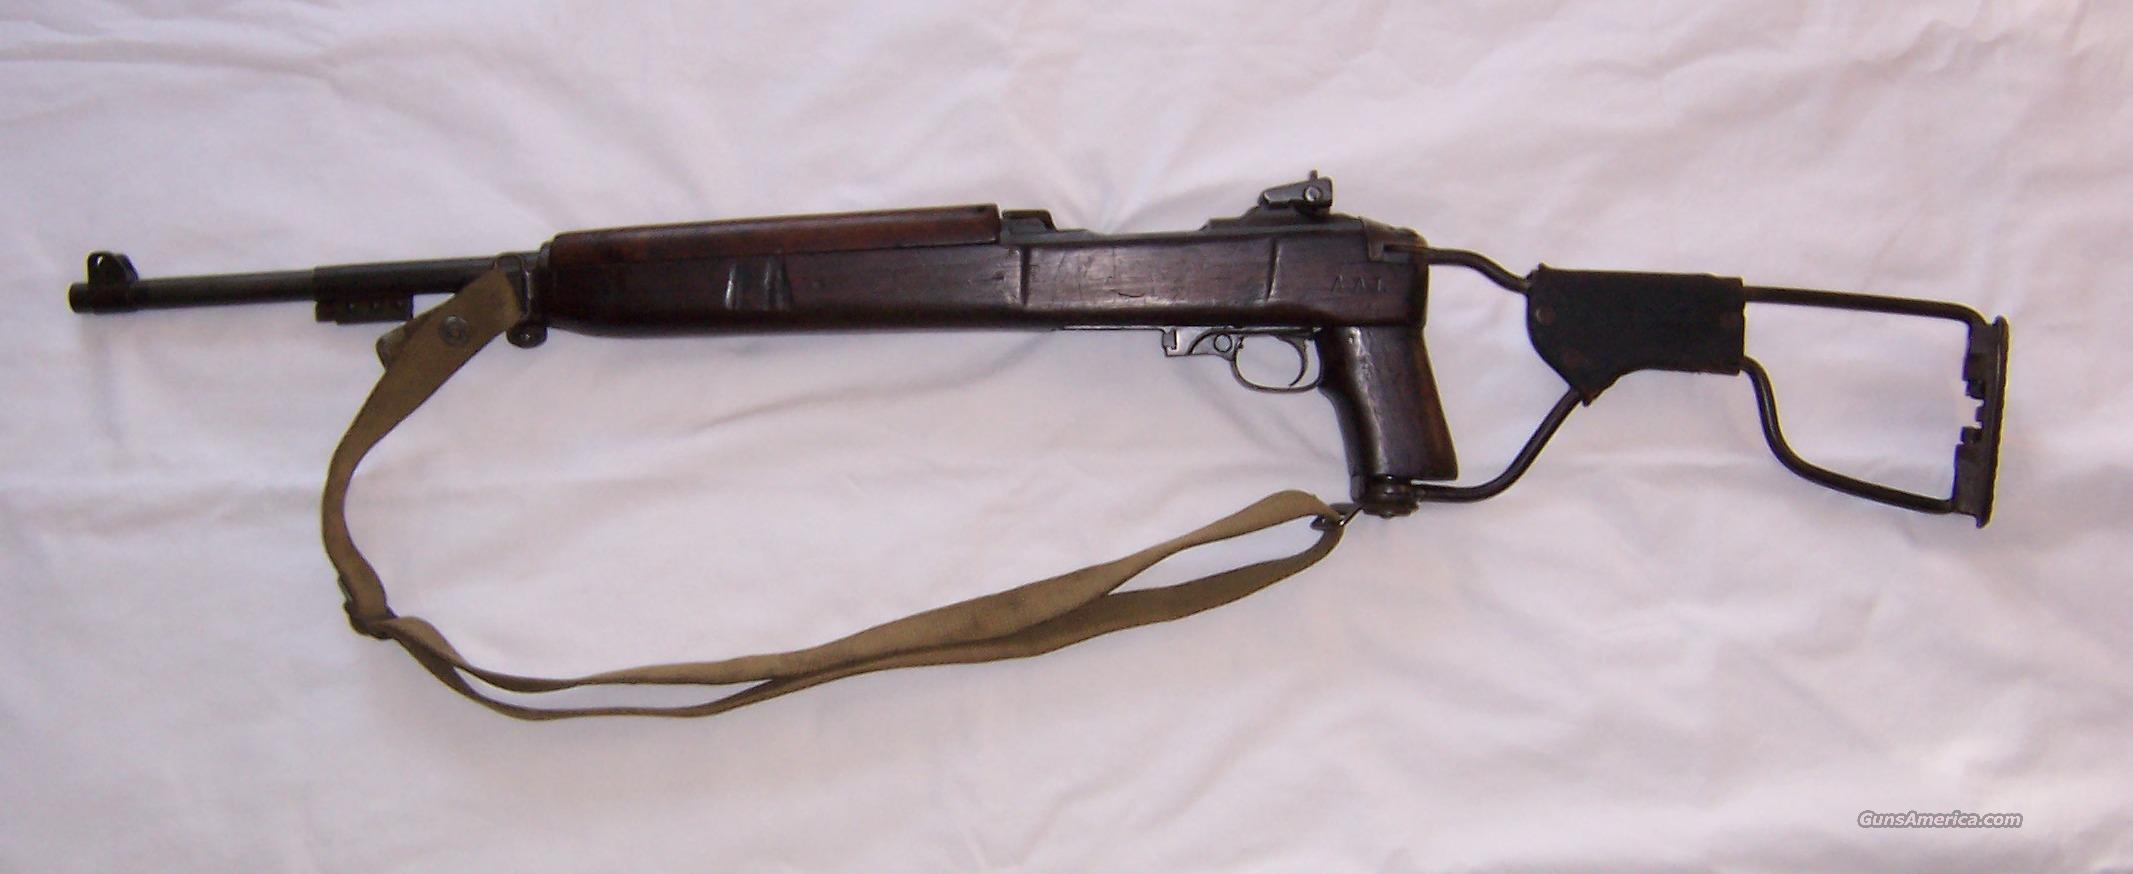 M1A1 Paratrooper Carbine  Guns > Rifles > Military Misc. Rifles US > M1 Carbine